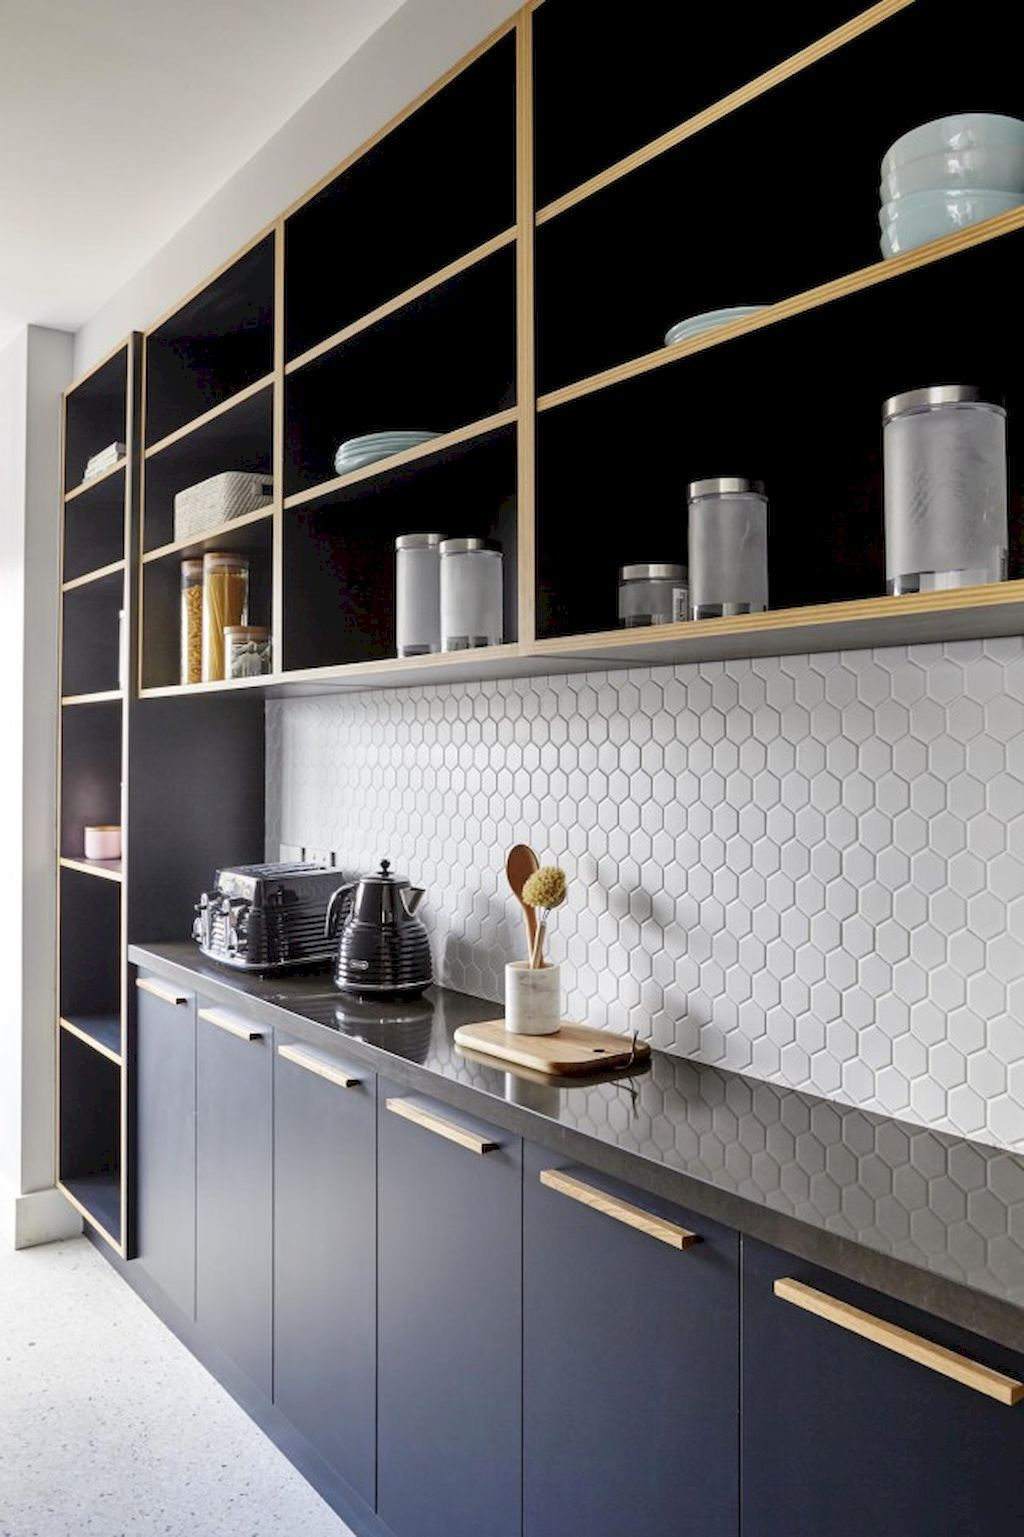 Gorgeous simply apartment kitchen decorating ideas on a budget